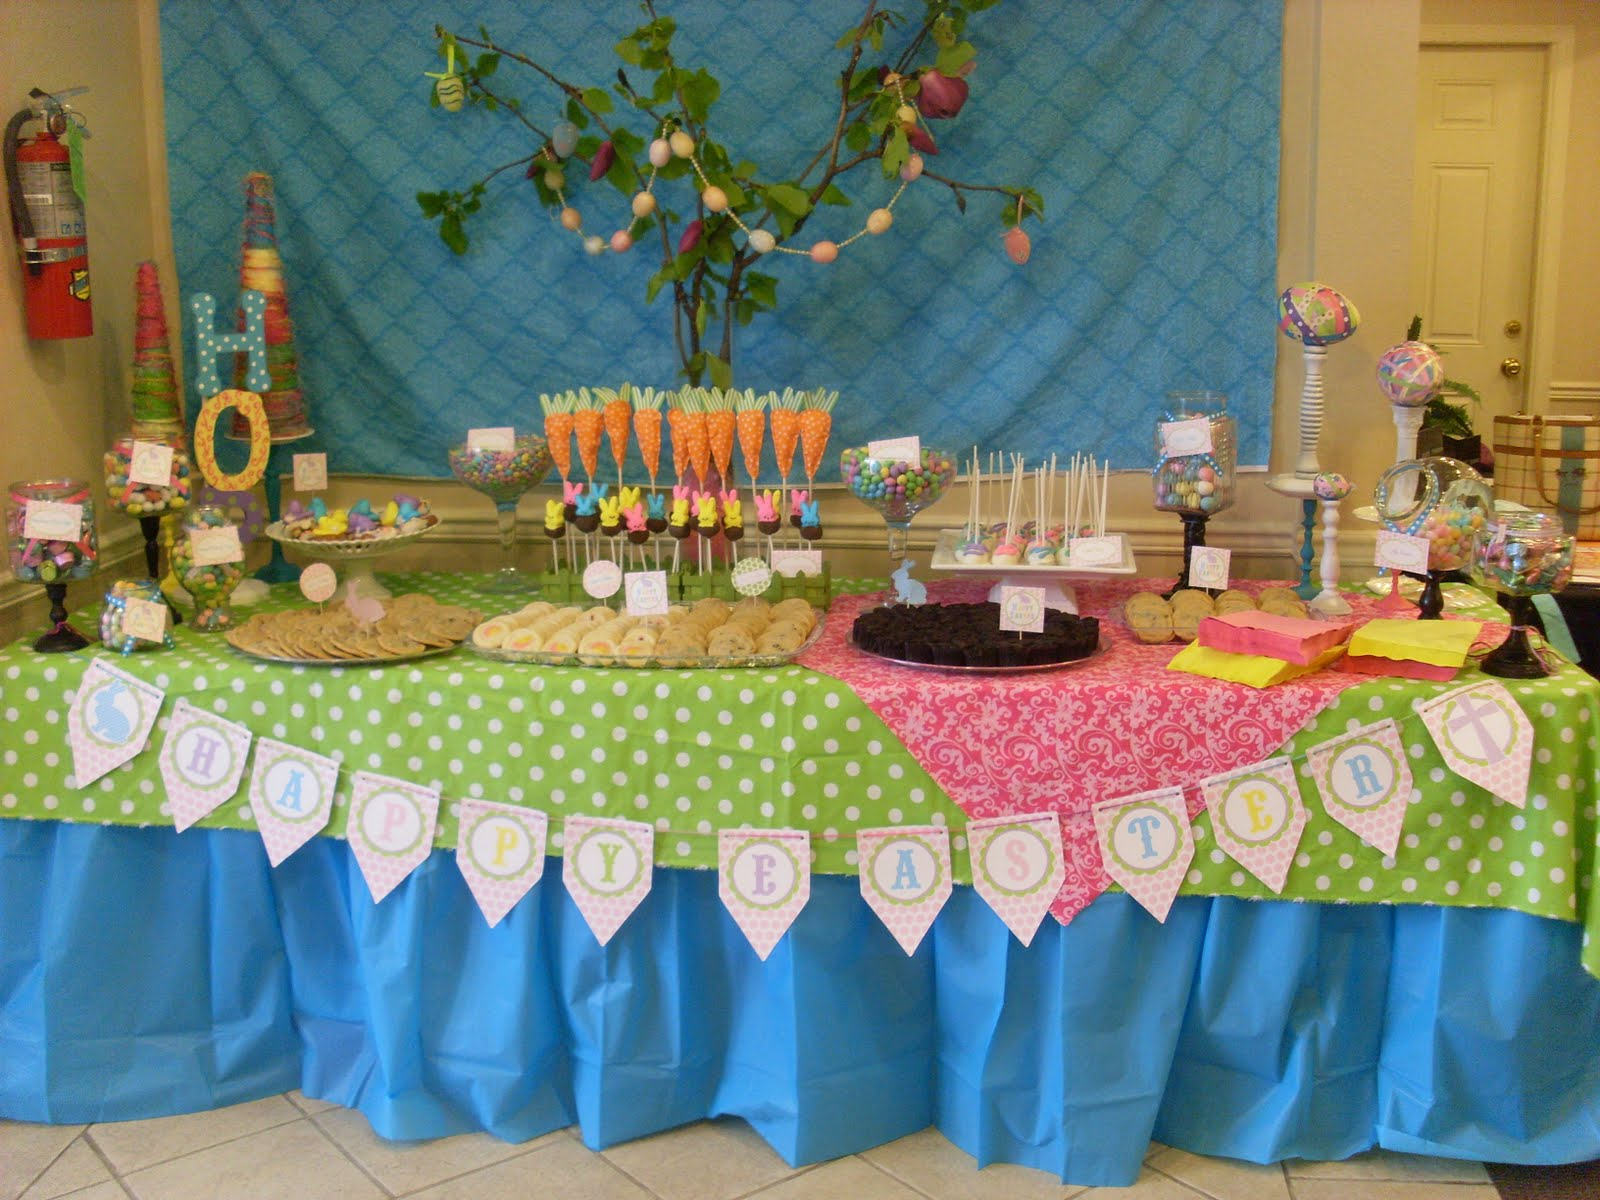 Close Up Pic Of The Downstairs Dessert Table